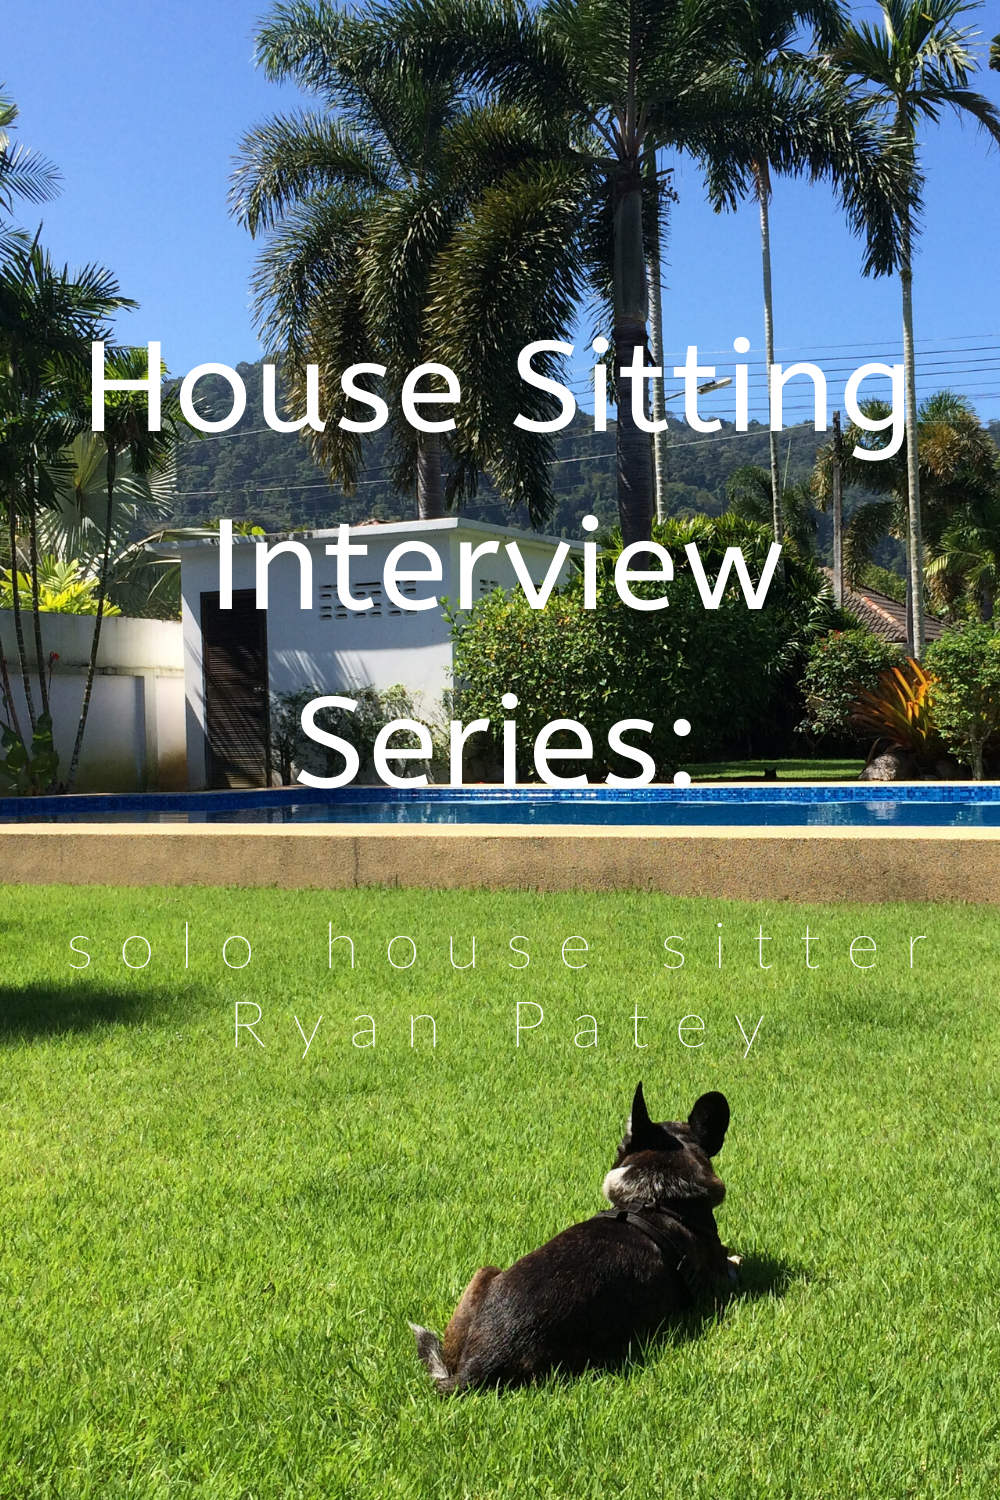 House Sitting Interview Series: Read all about life as a solo house sitter in this interview with Ryan Patey! Curious if you can still house sit as a guy house sitting alone? Ryan shows that it can be done for years on end! Read his top tips, strategies, best practices, and more!